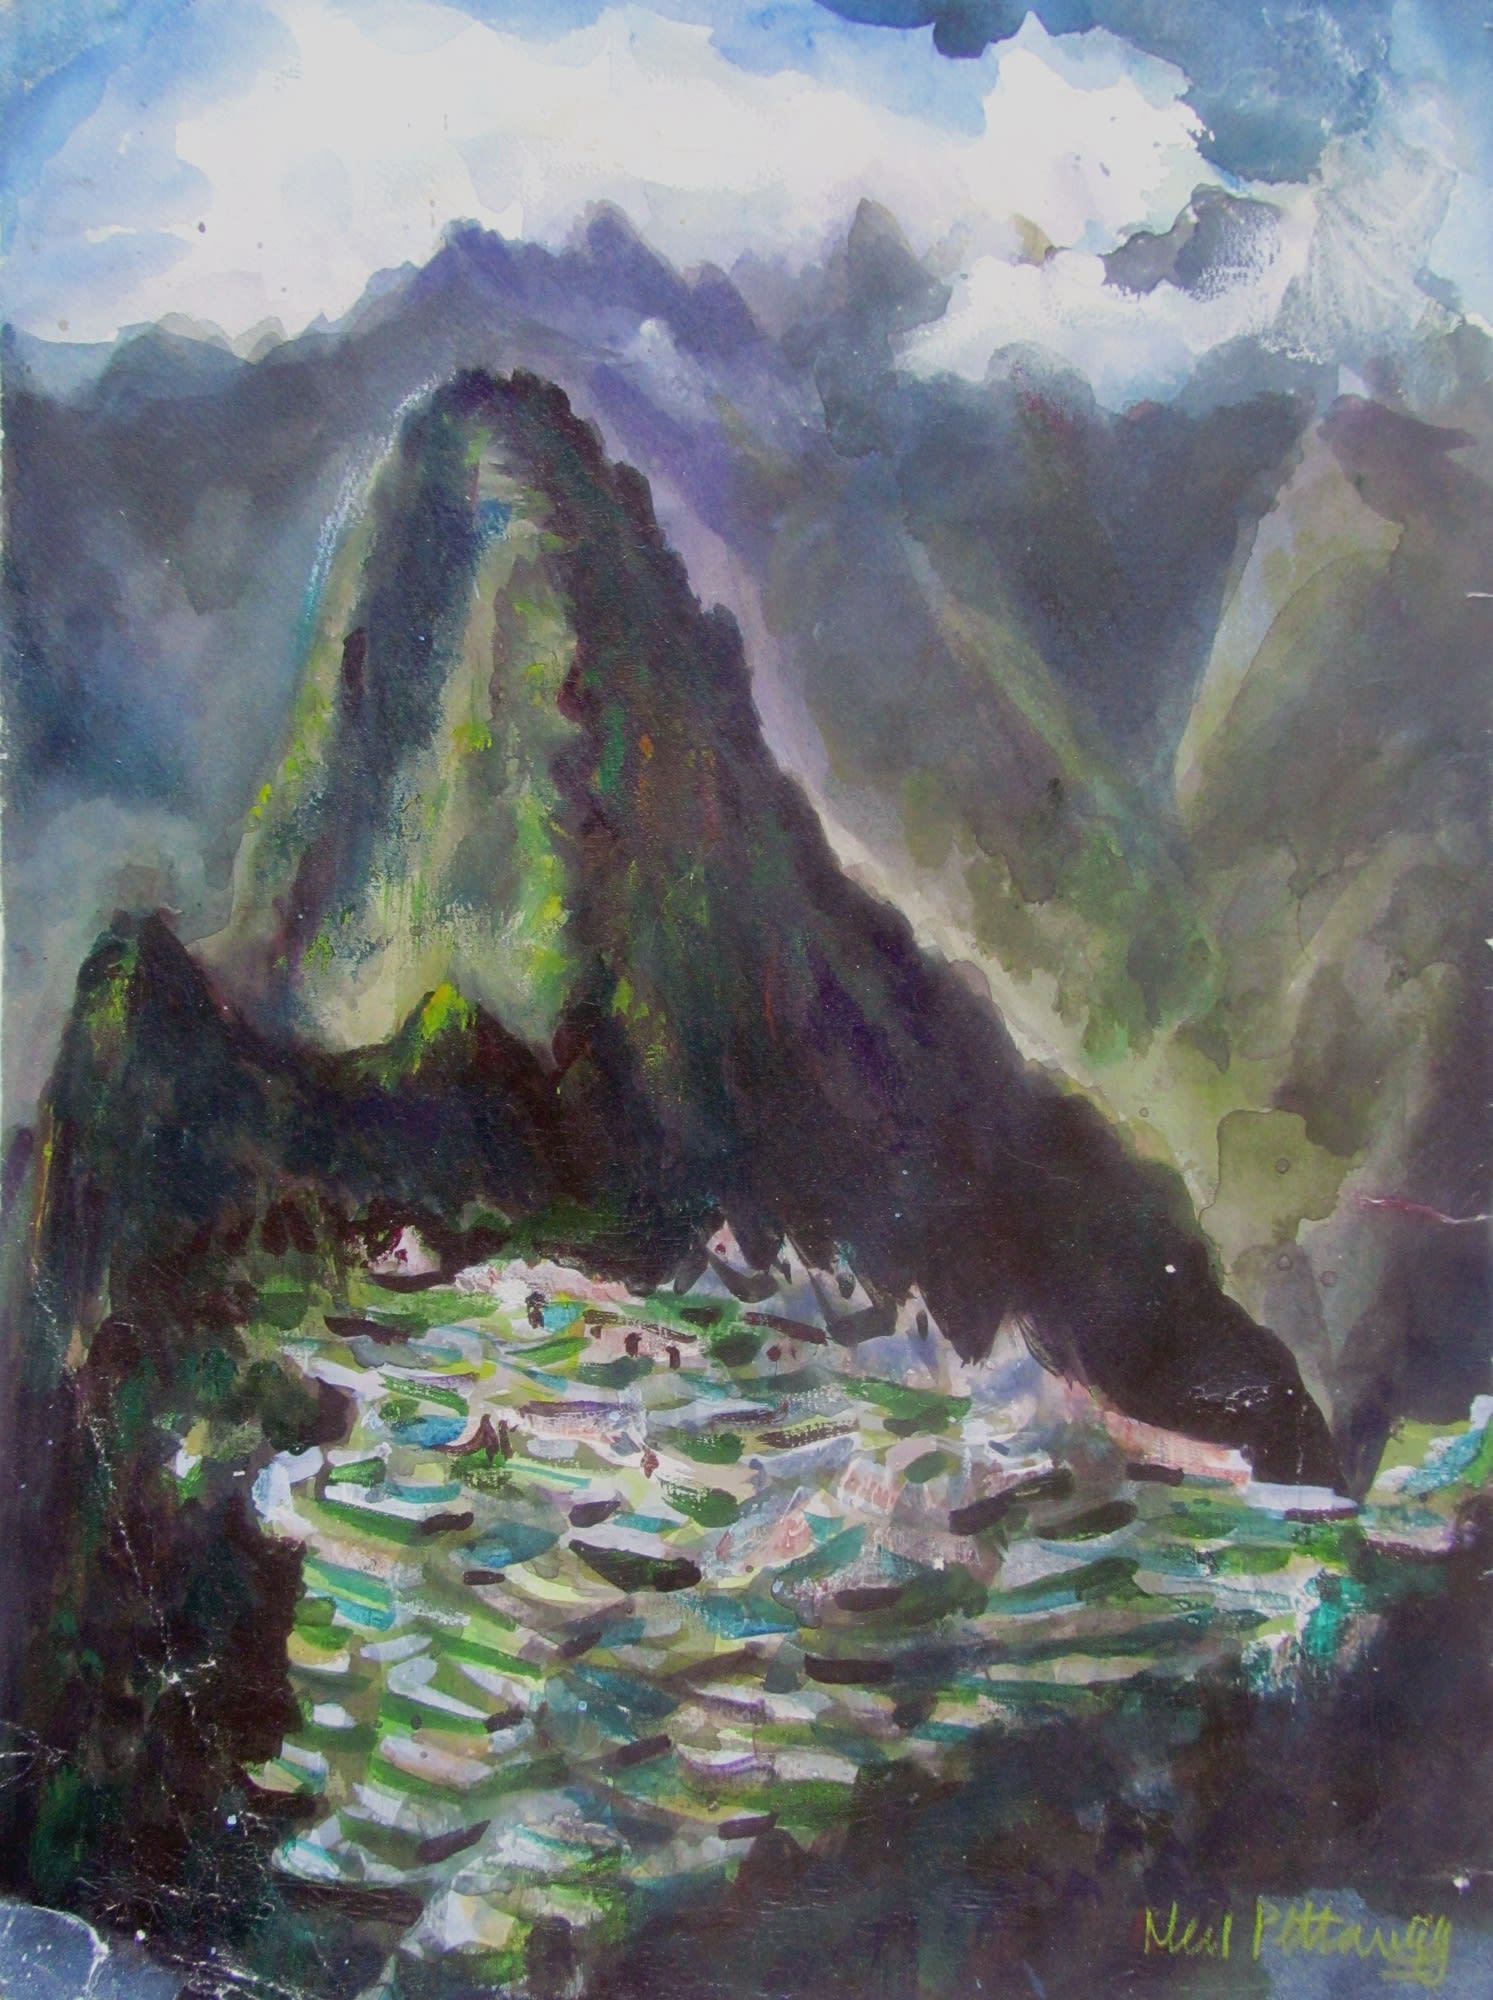 """<span class=""""link fancybox-details-link""""><a href=""""/artists/94-neil-pittaway/works/12452-neil-pittaway-magical-machu-picchu-city-in-the-clouds/"""">View Detail Page</a></span><div class=""""artist""""><span class=""""artist""""><strong>Neil Pittaway</strong></span></div><div class=""""title""""><em>Magical Machu Picchu, City in the Clouds</em></div><div class=""""medium"""">watercolour</div><div class=""""dimensions"""">Frame: 54 x 45 cm<br /> Artwork: 40 x 30 cm</div><div class=""""price"""">£450.00</div>"""